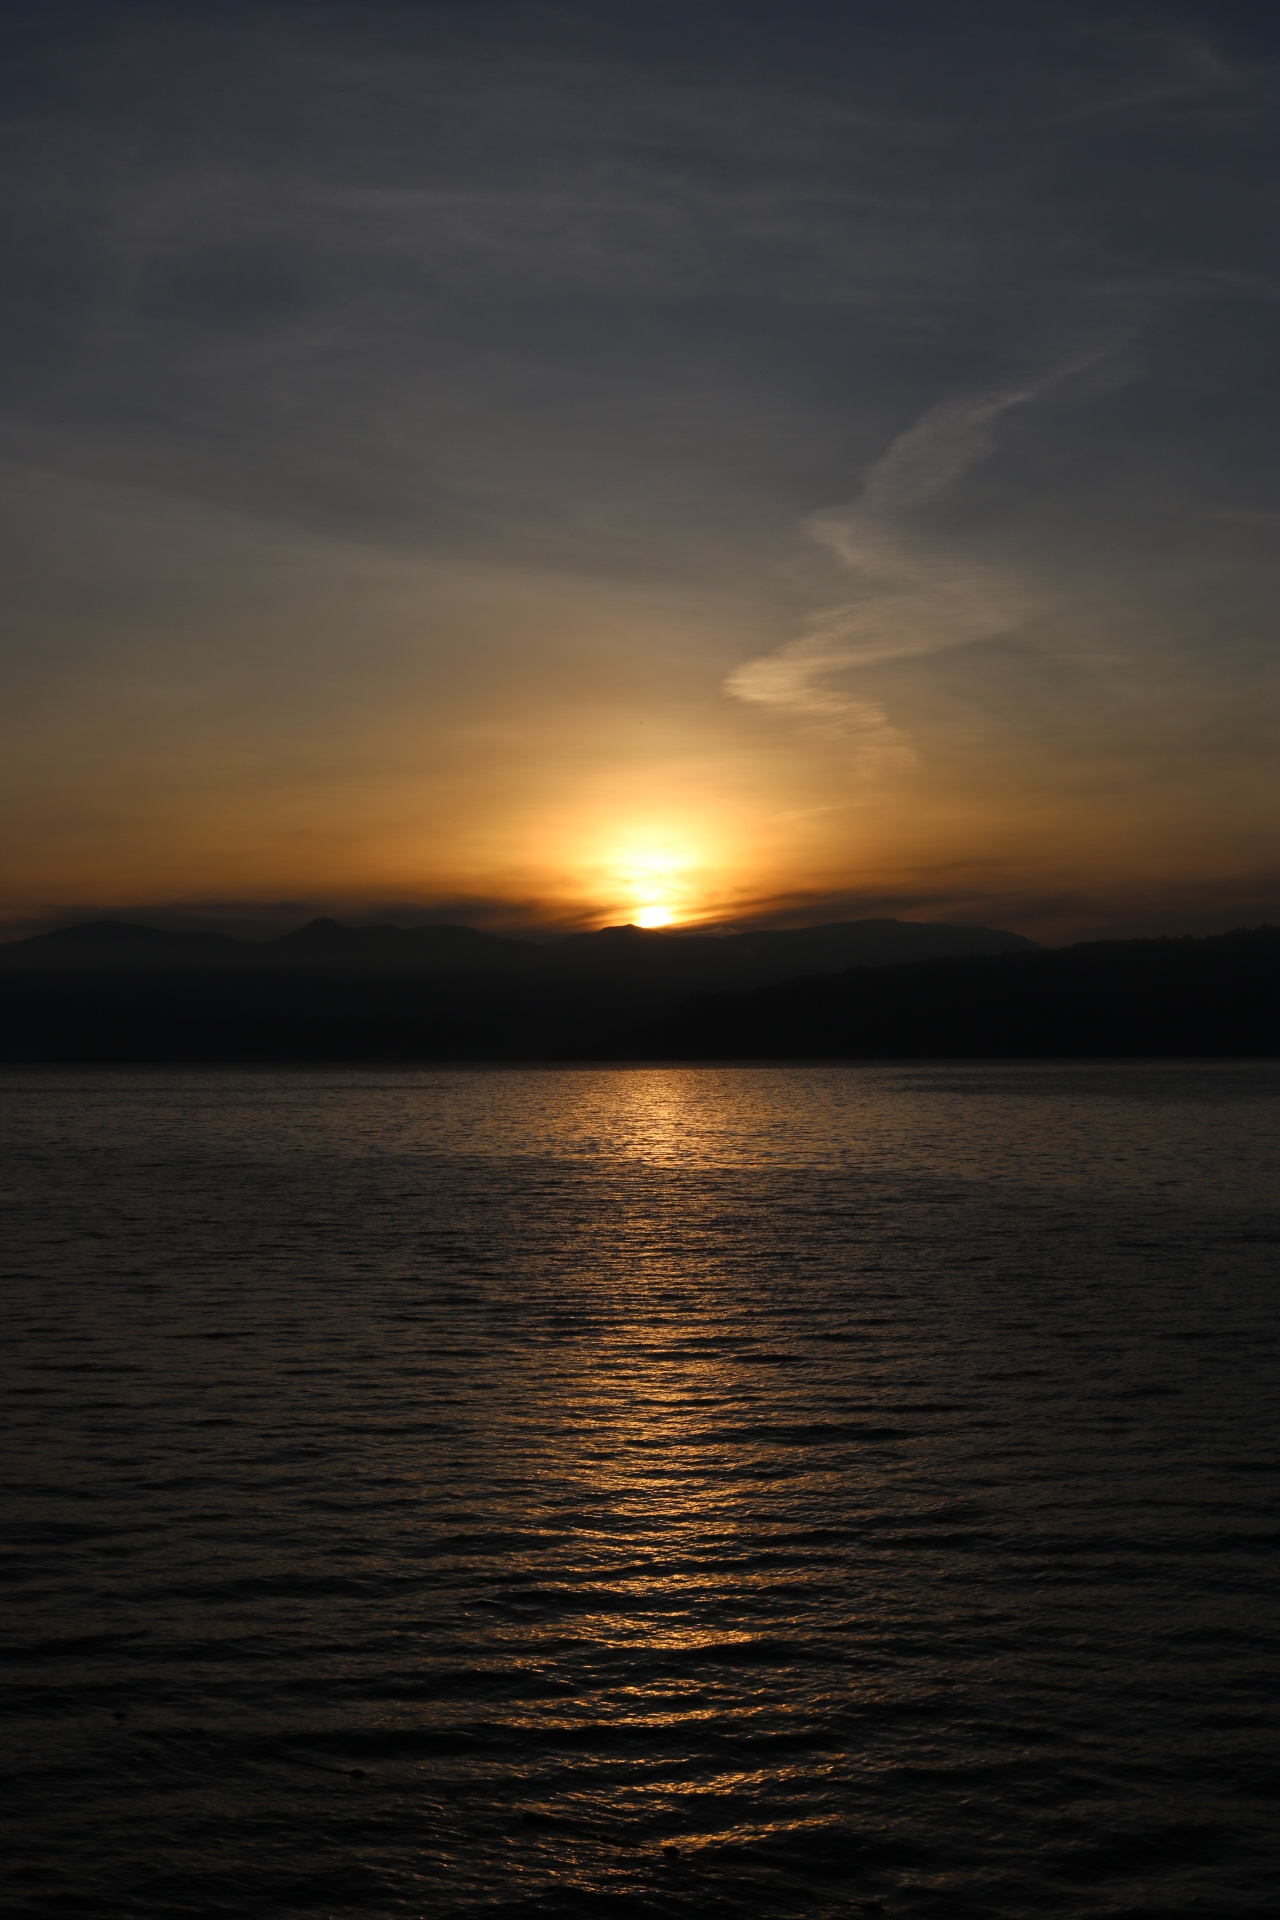 Lake Toba Sunrise